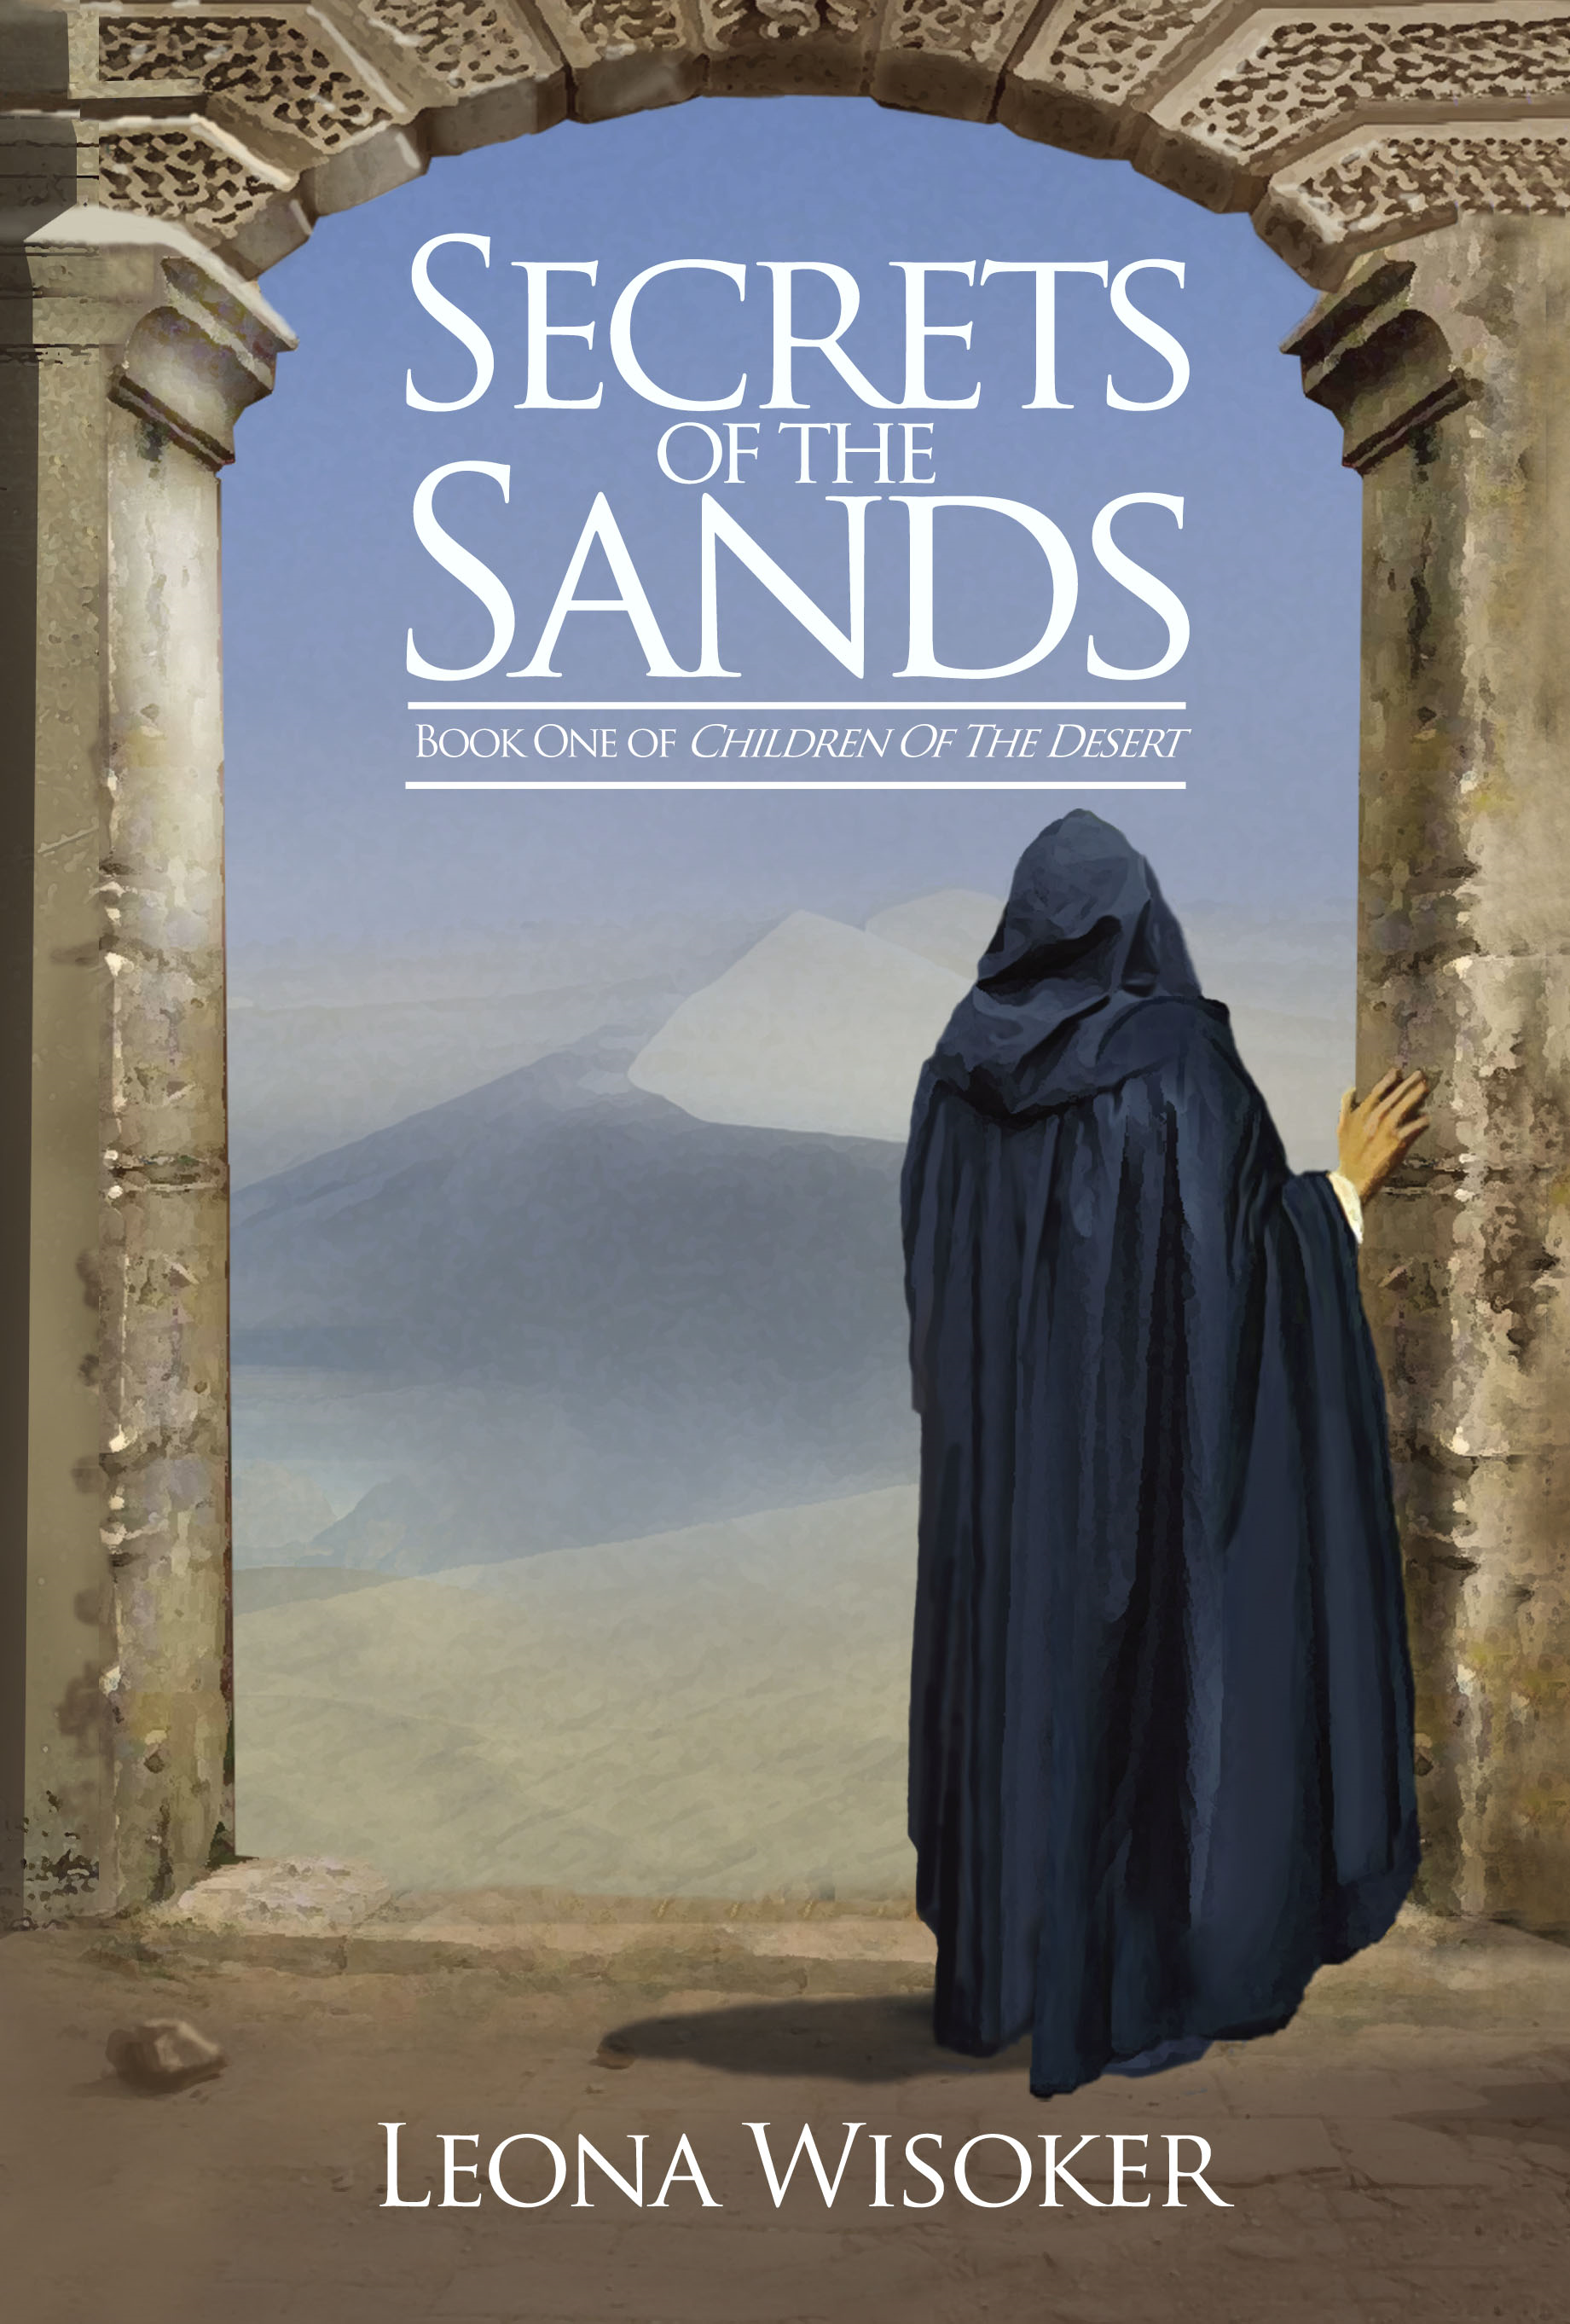 Secrets of the Sands By: Leona Wisoker